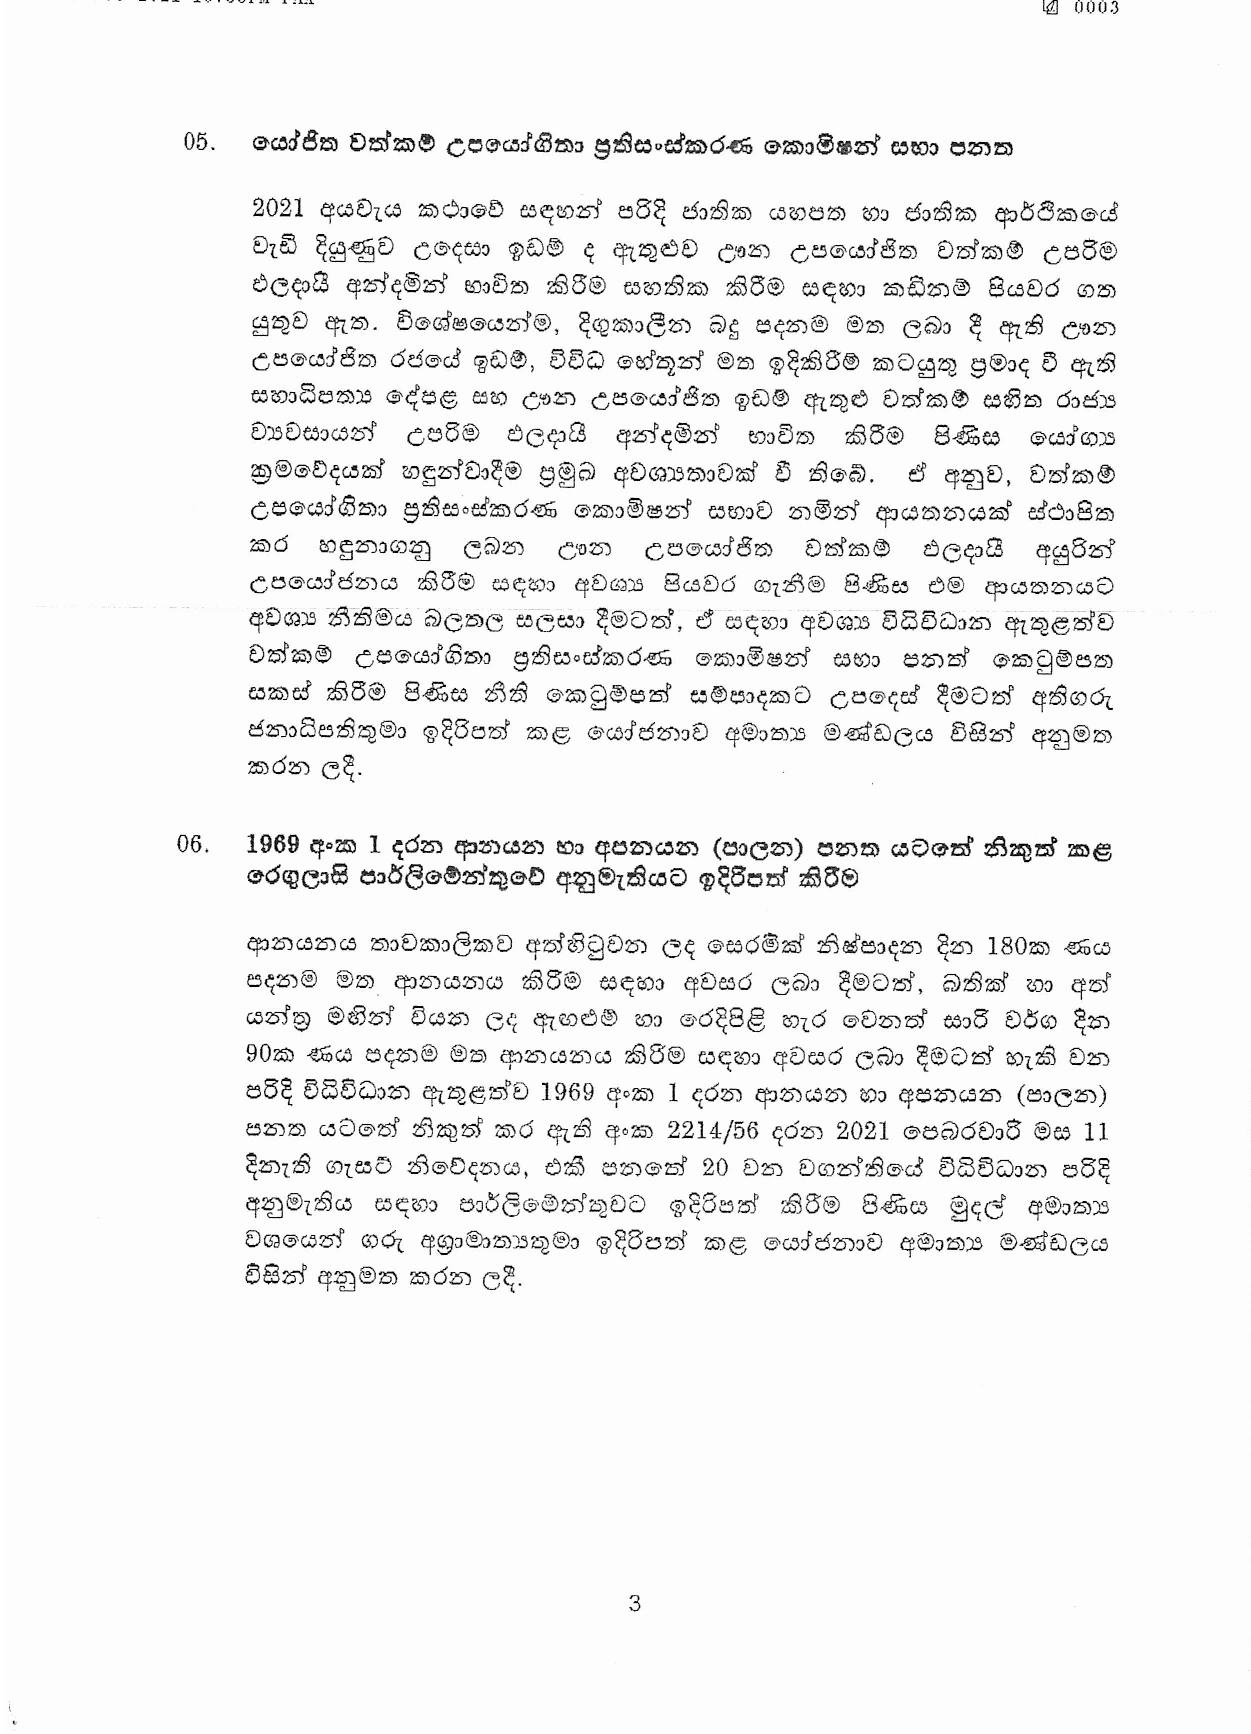 Cabinet Decision on 23.03.2021 page 003